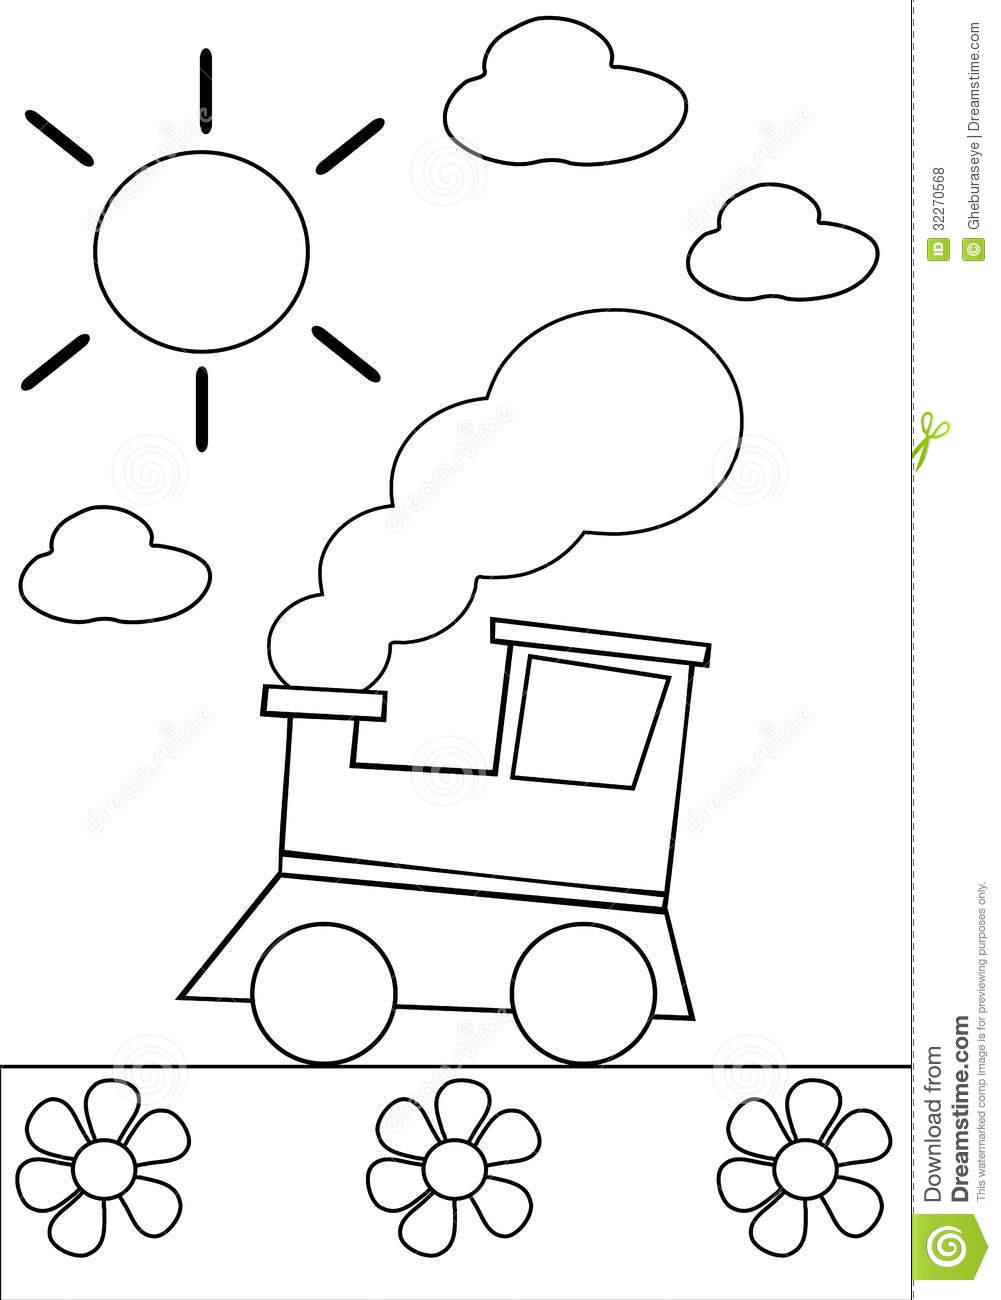 Coloring Train Royalty Free Stock Photos